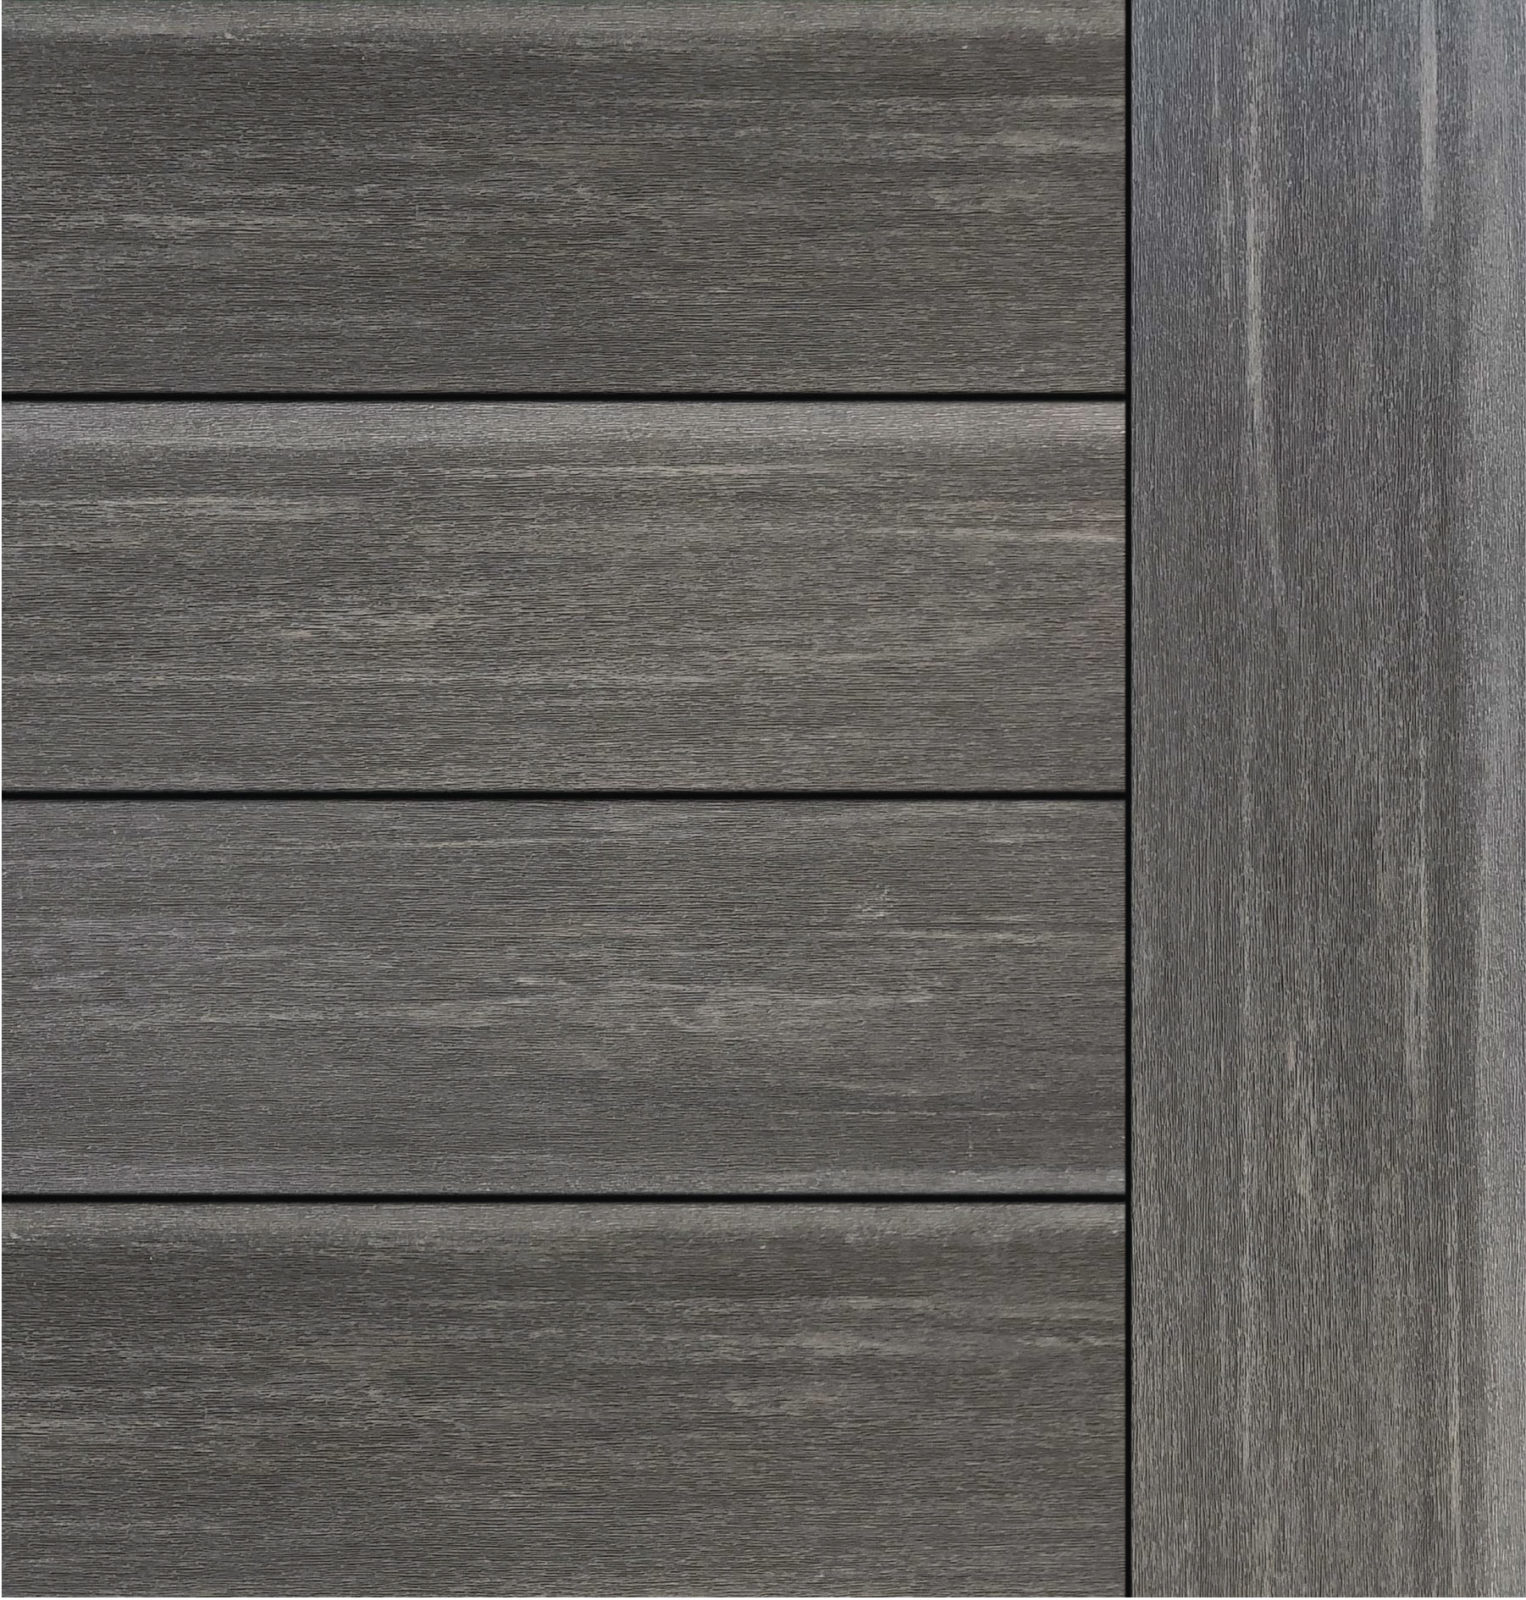 Azek Vintage Collection Dark Hickory Solid 16 Schillings